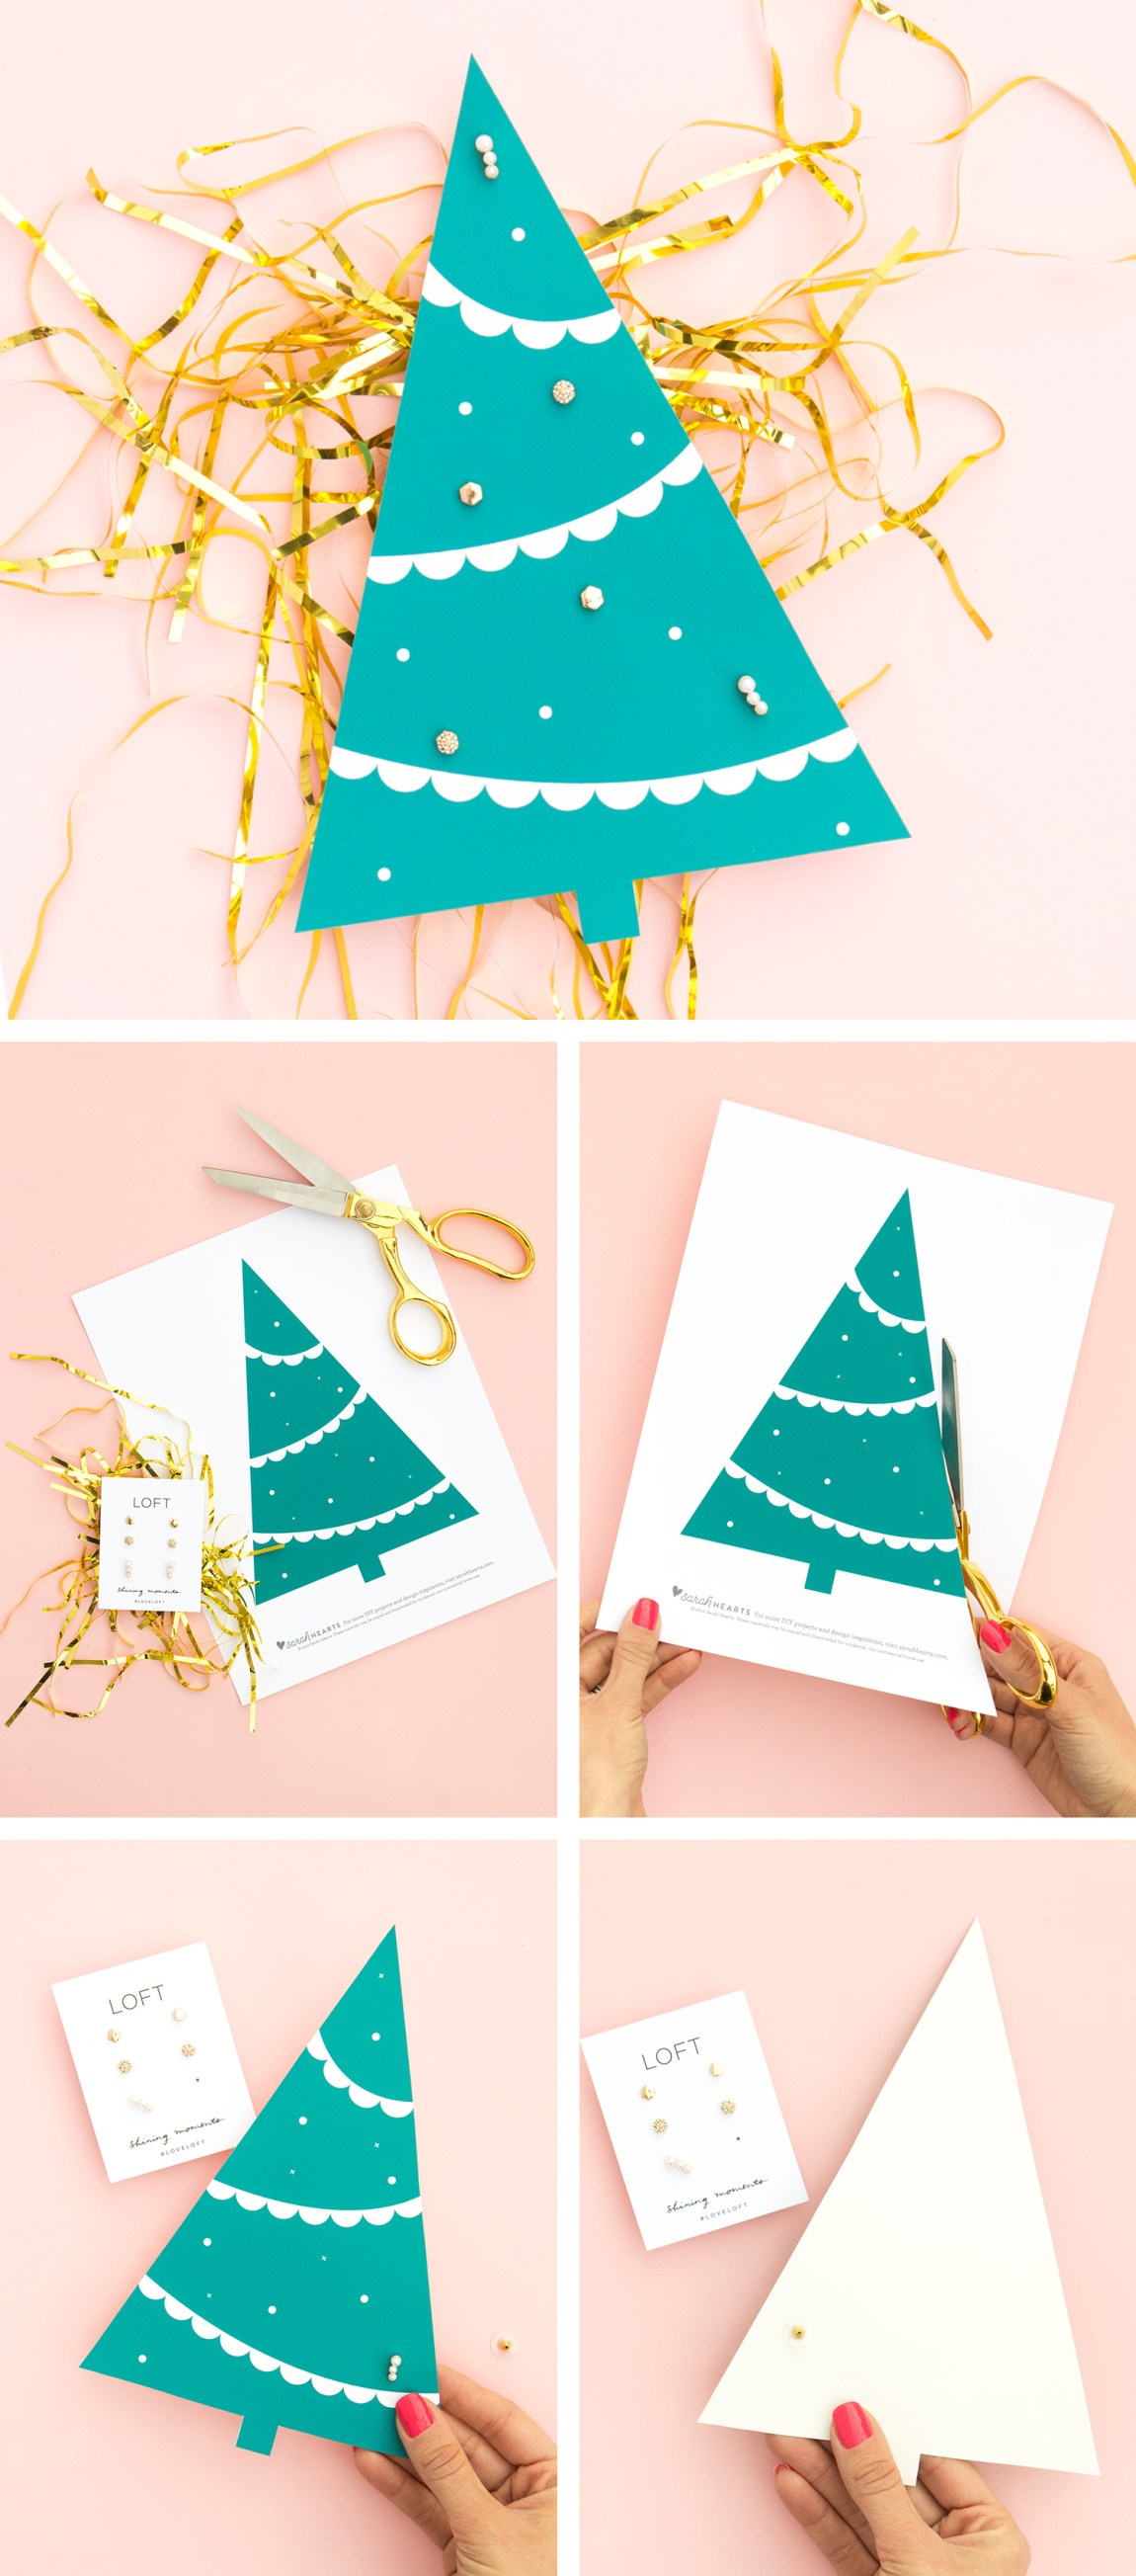 The cutest way to gift earrings ever! (Click through to download the free printable tree template)